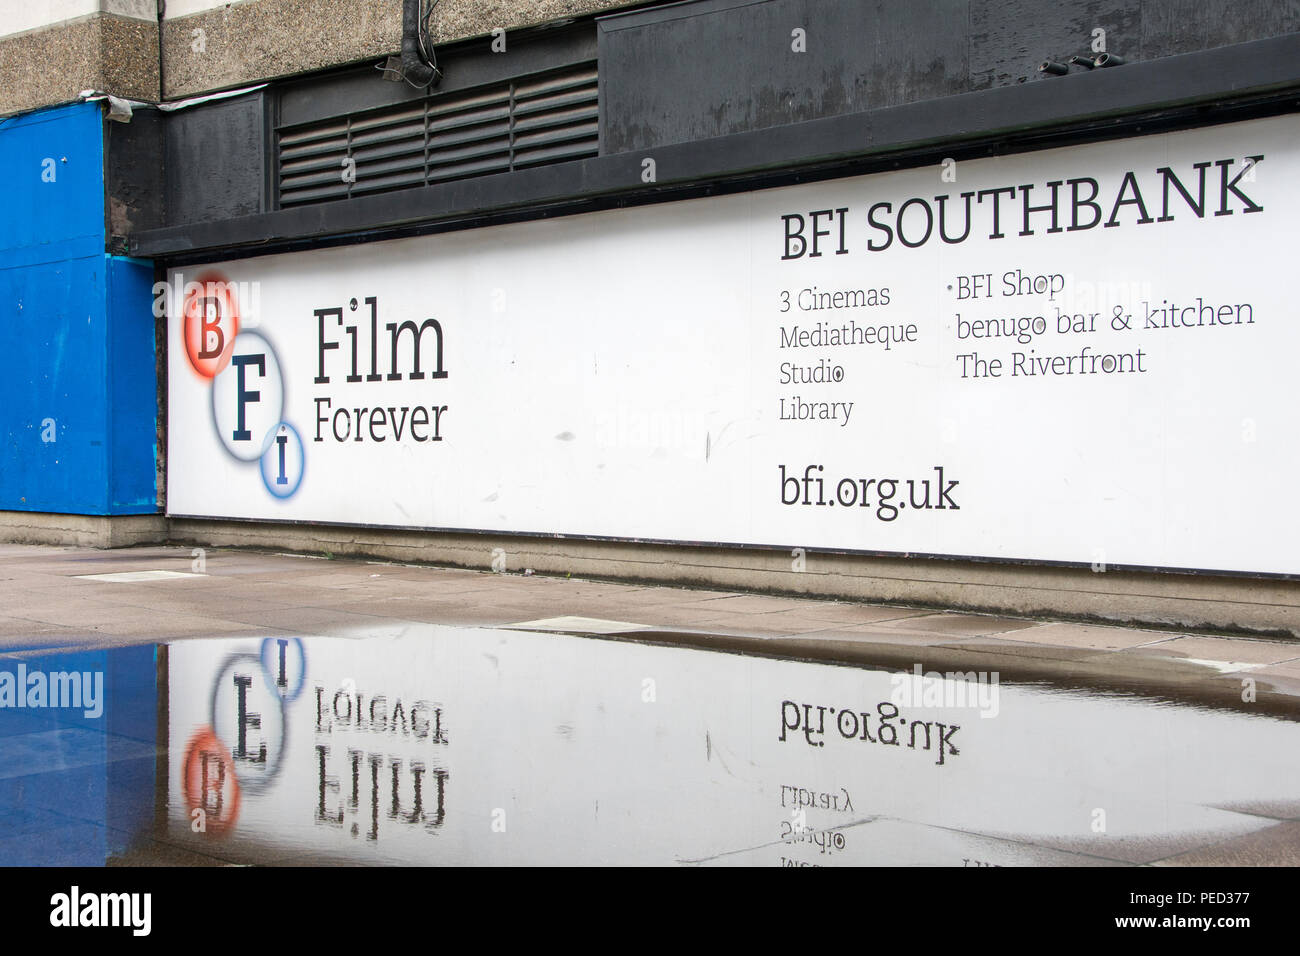 BFI advertisement on London's Southbank, UK - Stock Image